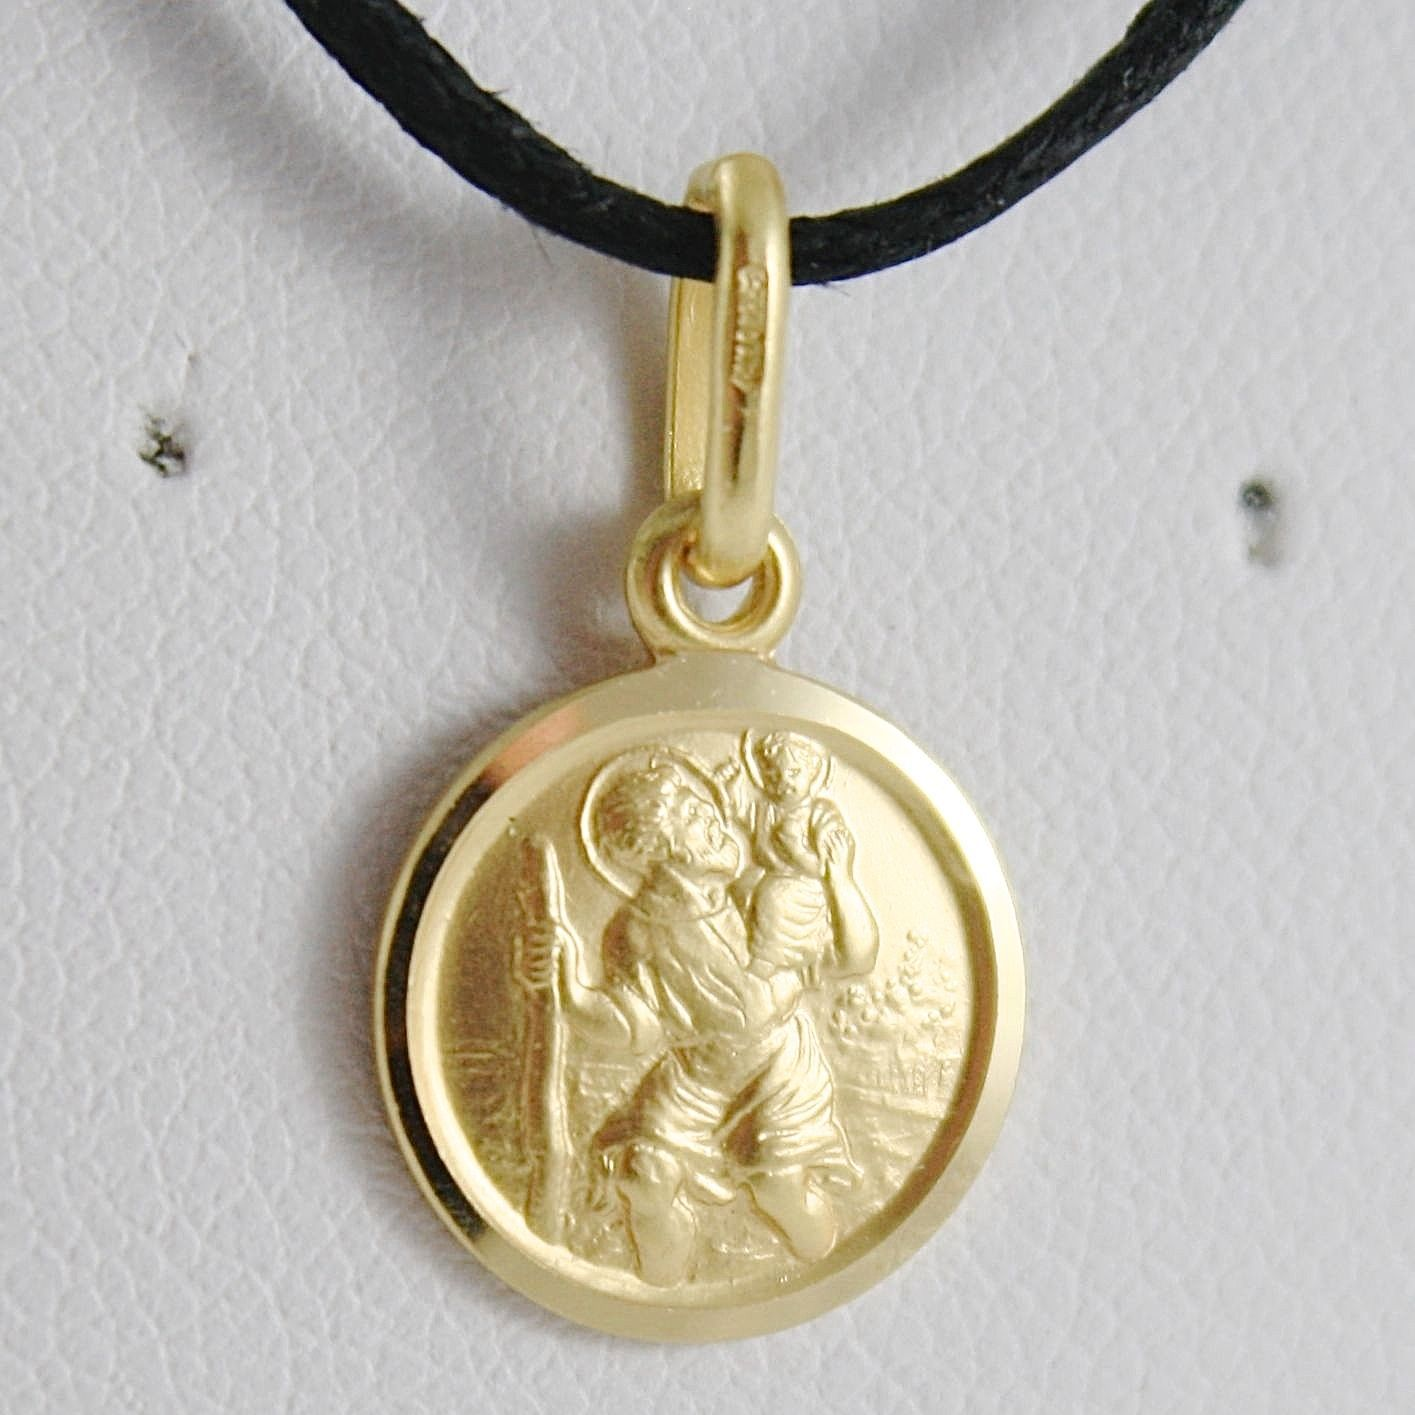 COLGANTE MEDALLA DE ORO AMARILLO 750 18 CT, ST. CRISTÓBAL, 13 MM, MADE IN ITALY